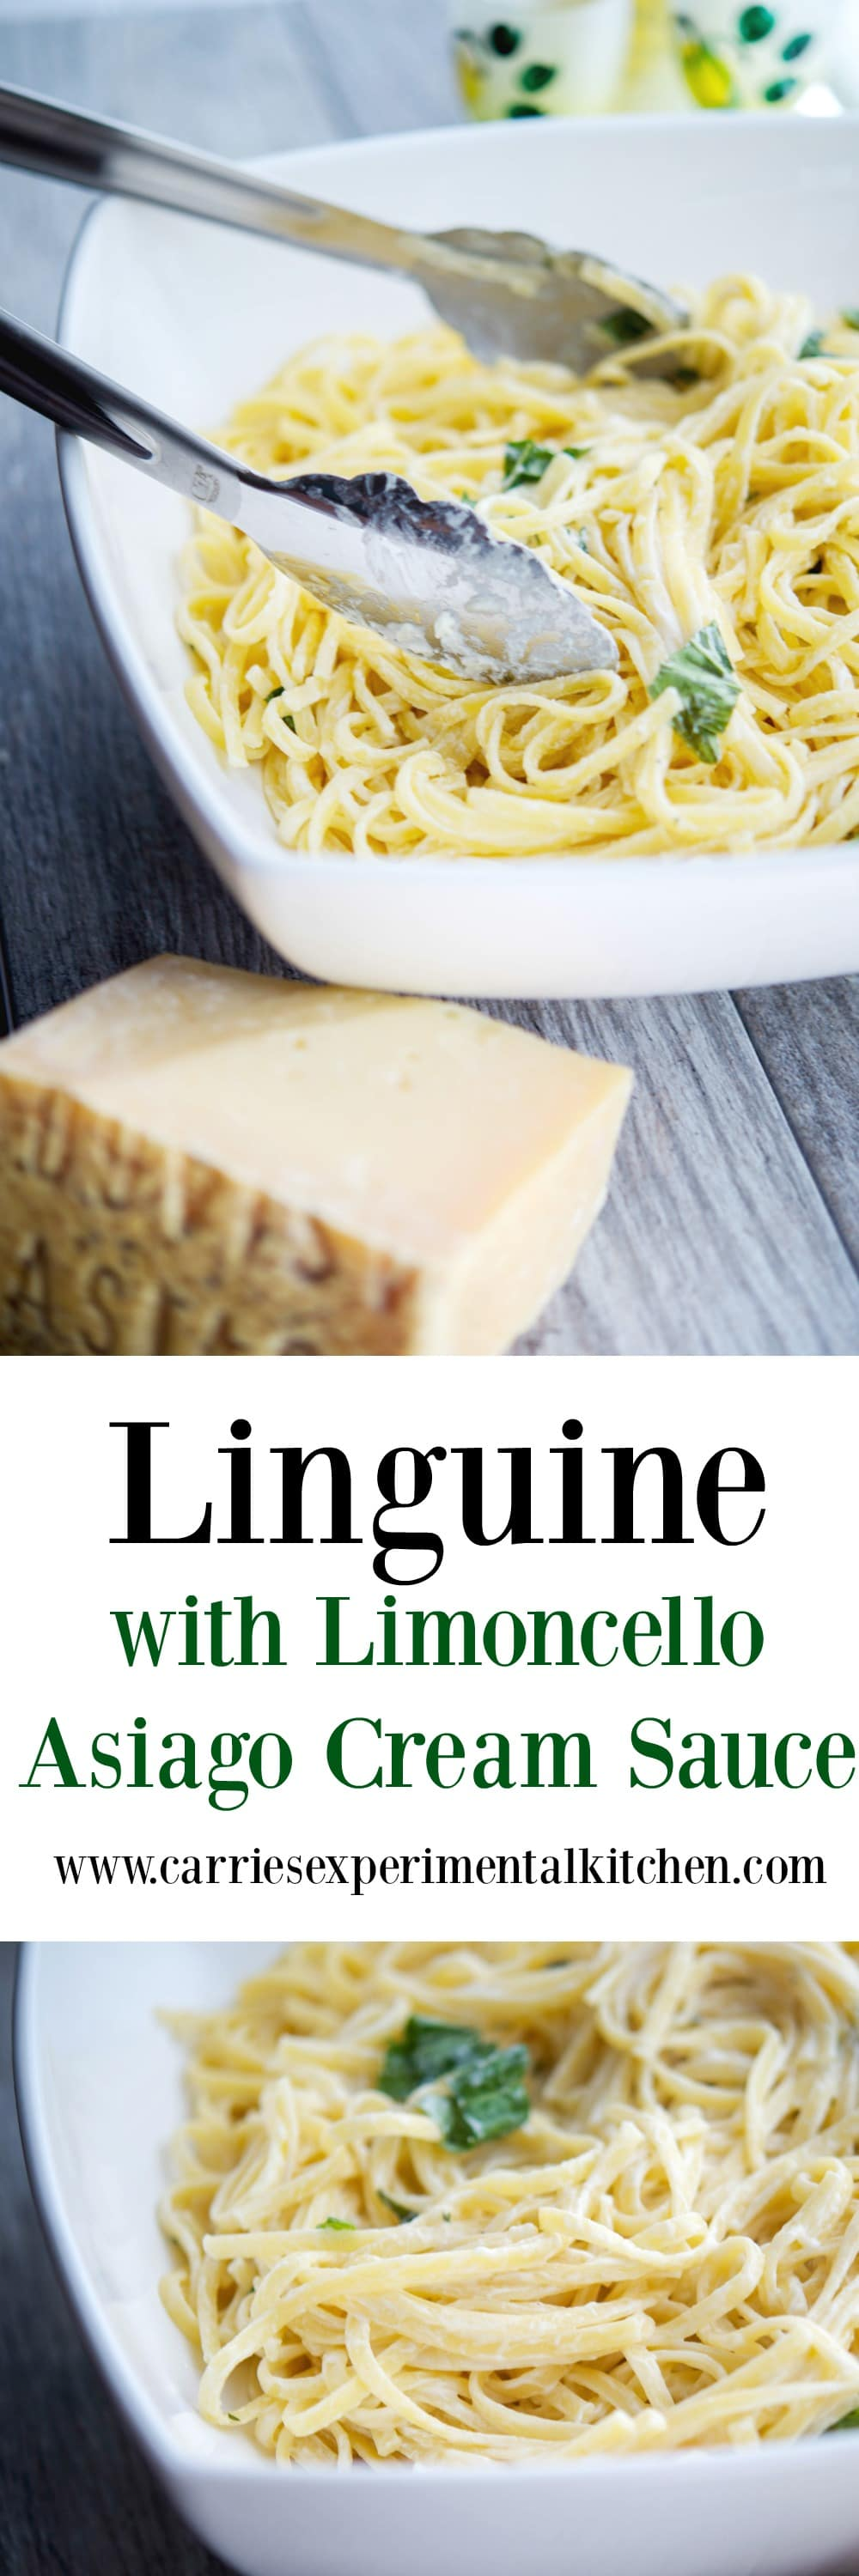 Linguine tossed with a light and lemony Limoncello Asiago Cream Sauce makes the perfect, quick and delicious weeknight meal.